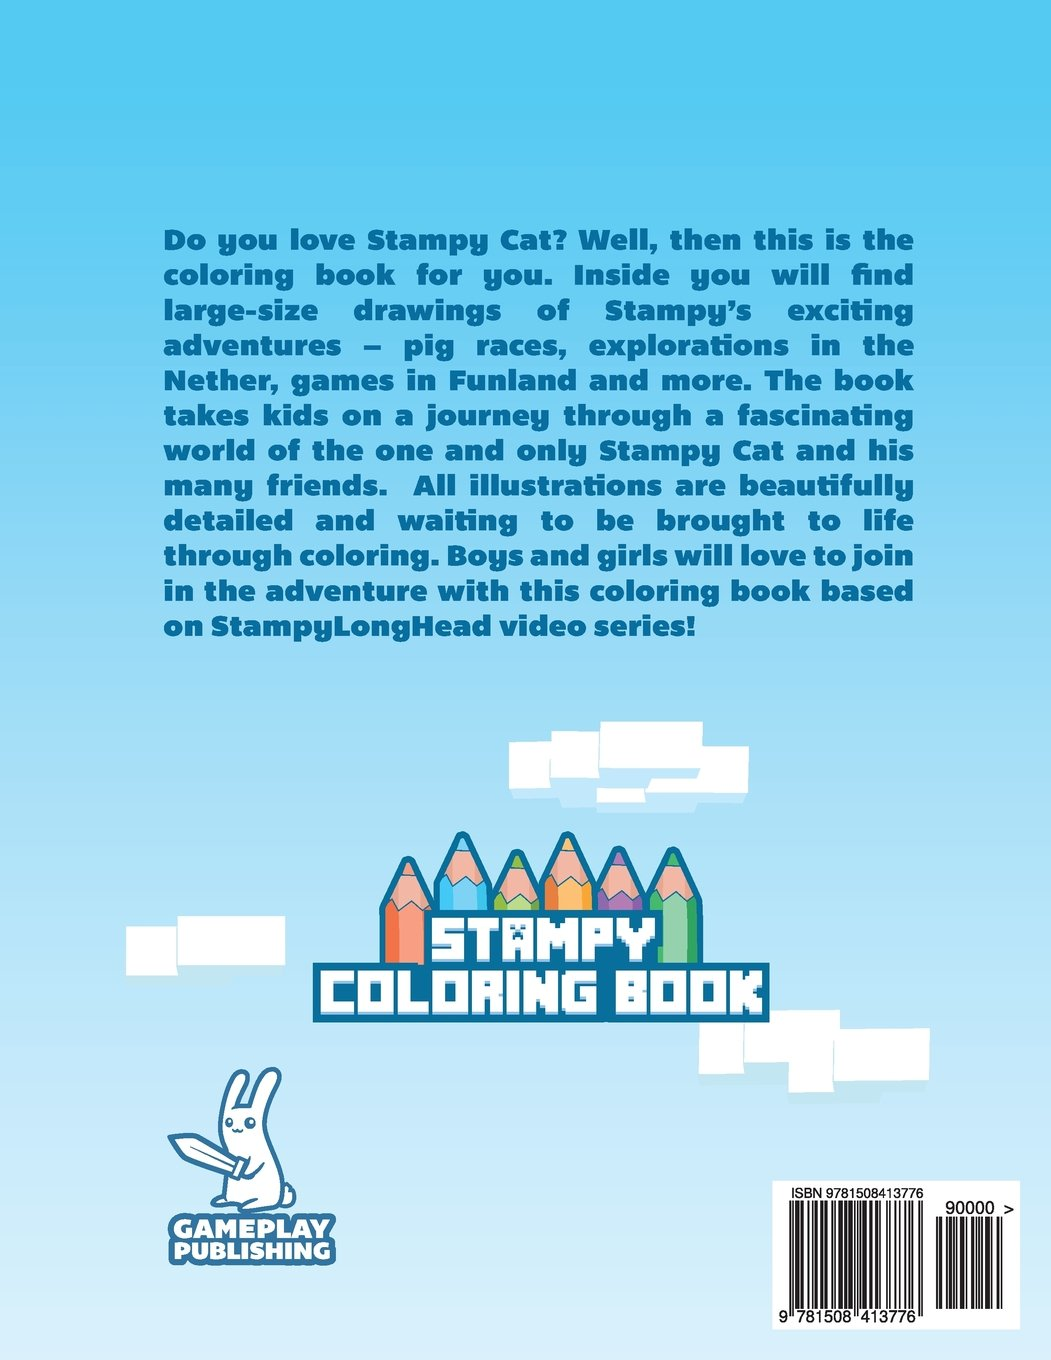 Stampy Cat Coloring Book Minecraft Adventures Gameplay Publishing Library 9781508413776 Books